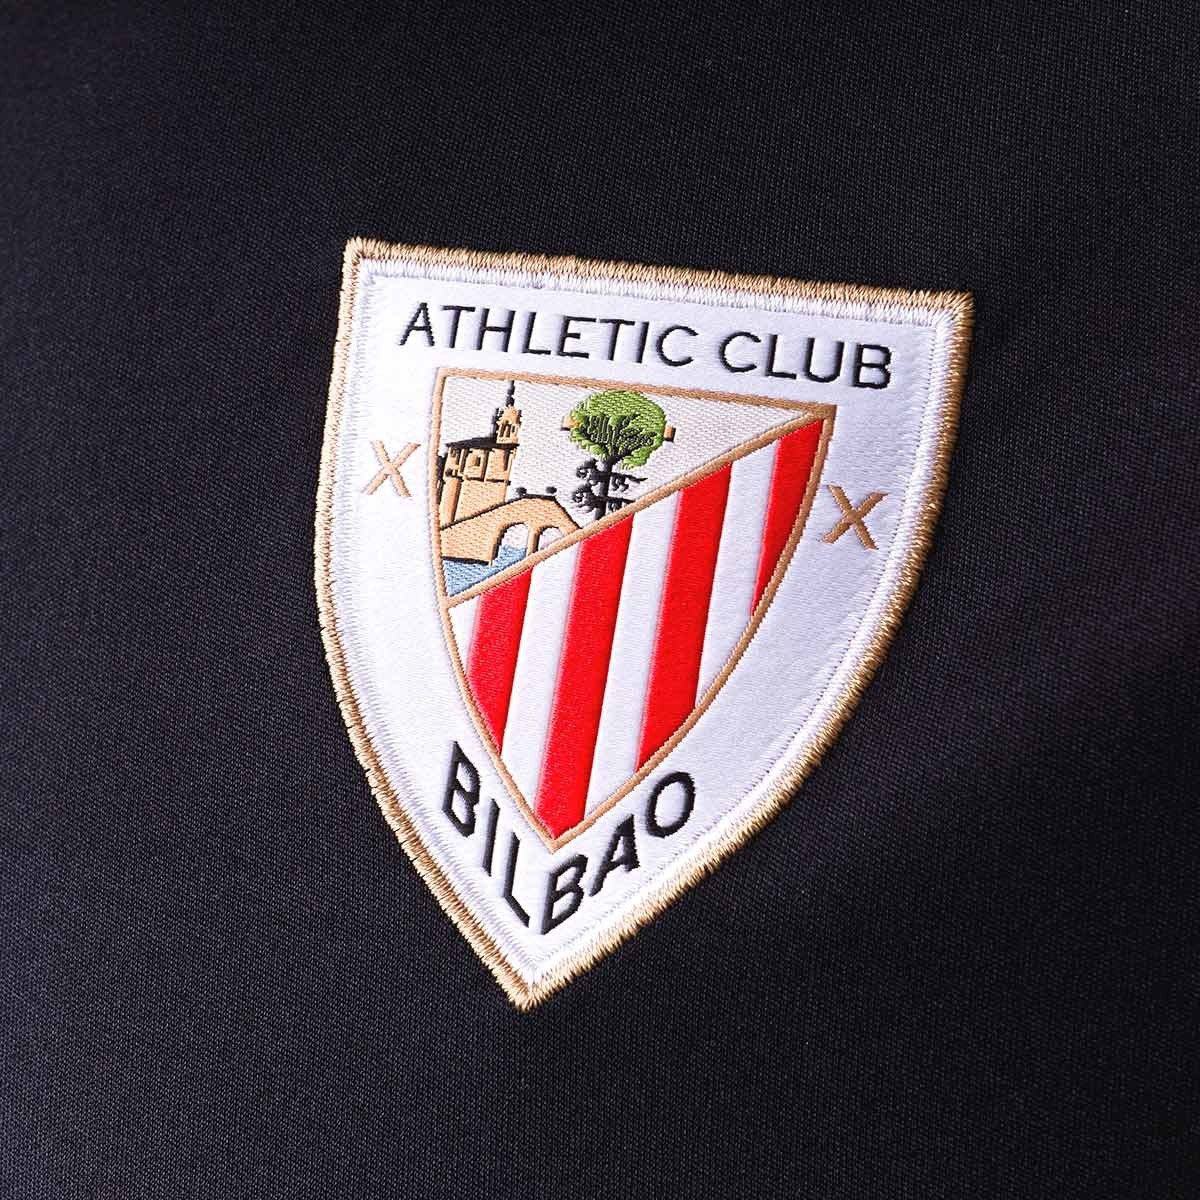 035bcf4826b75 Jersey New Balance Goalkeeper AC Bilbao 2018-2019 Home Black - Football  store Fútbol Emotion